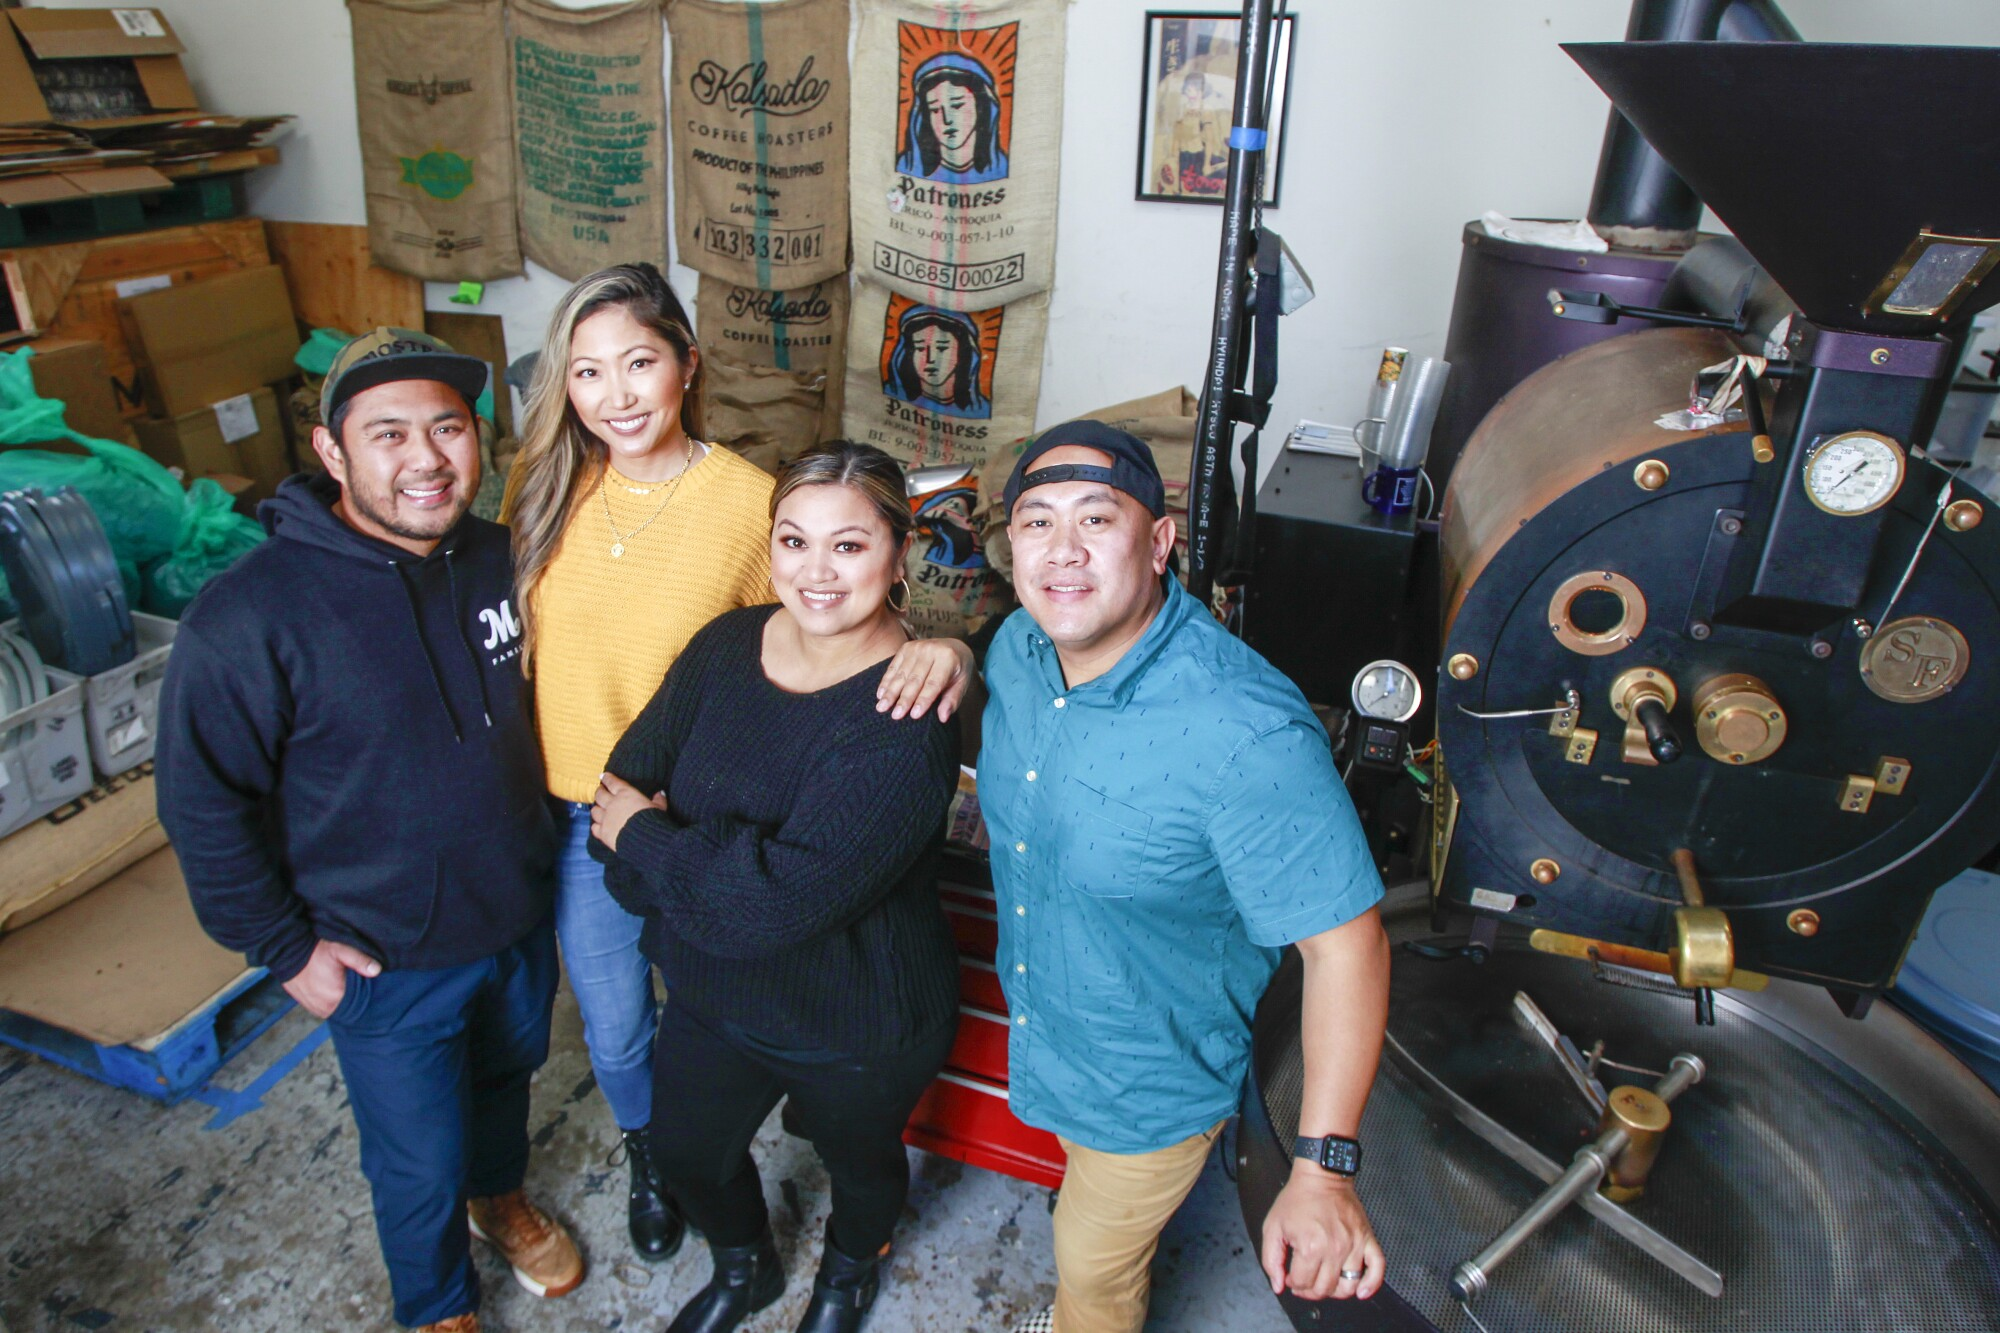 Mostra founders (from left) Sam Magtanong, Jelynn Malone, Beverly Magtanong and Mike Arquines in the company's Carmel Mountain Ranch roasting facility.